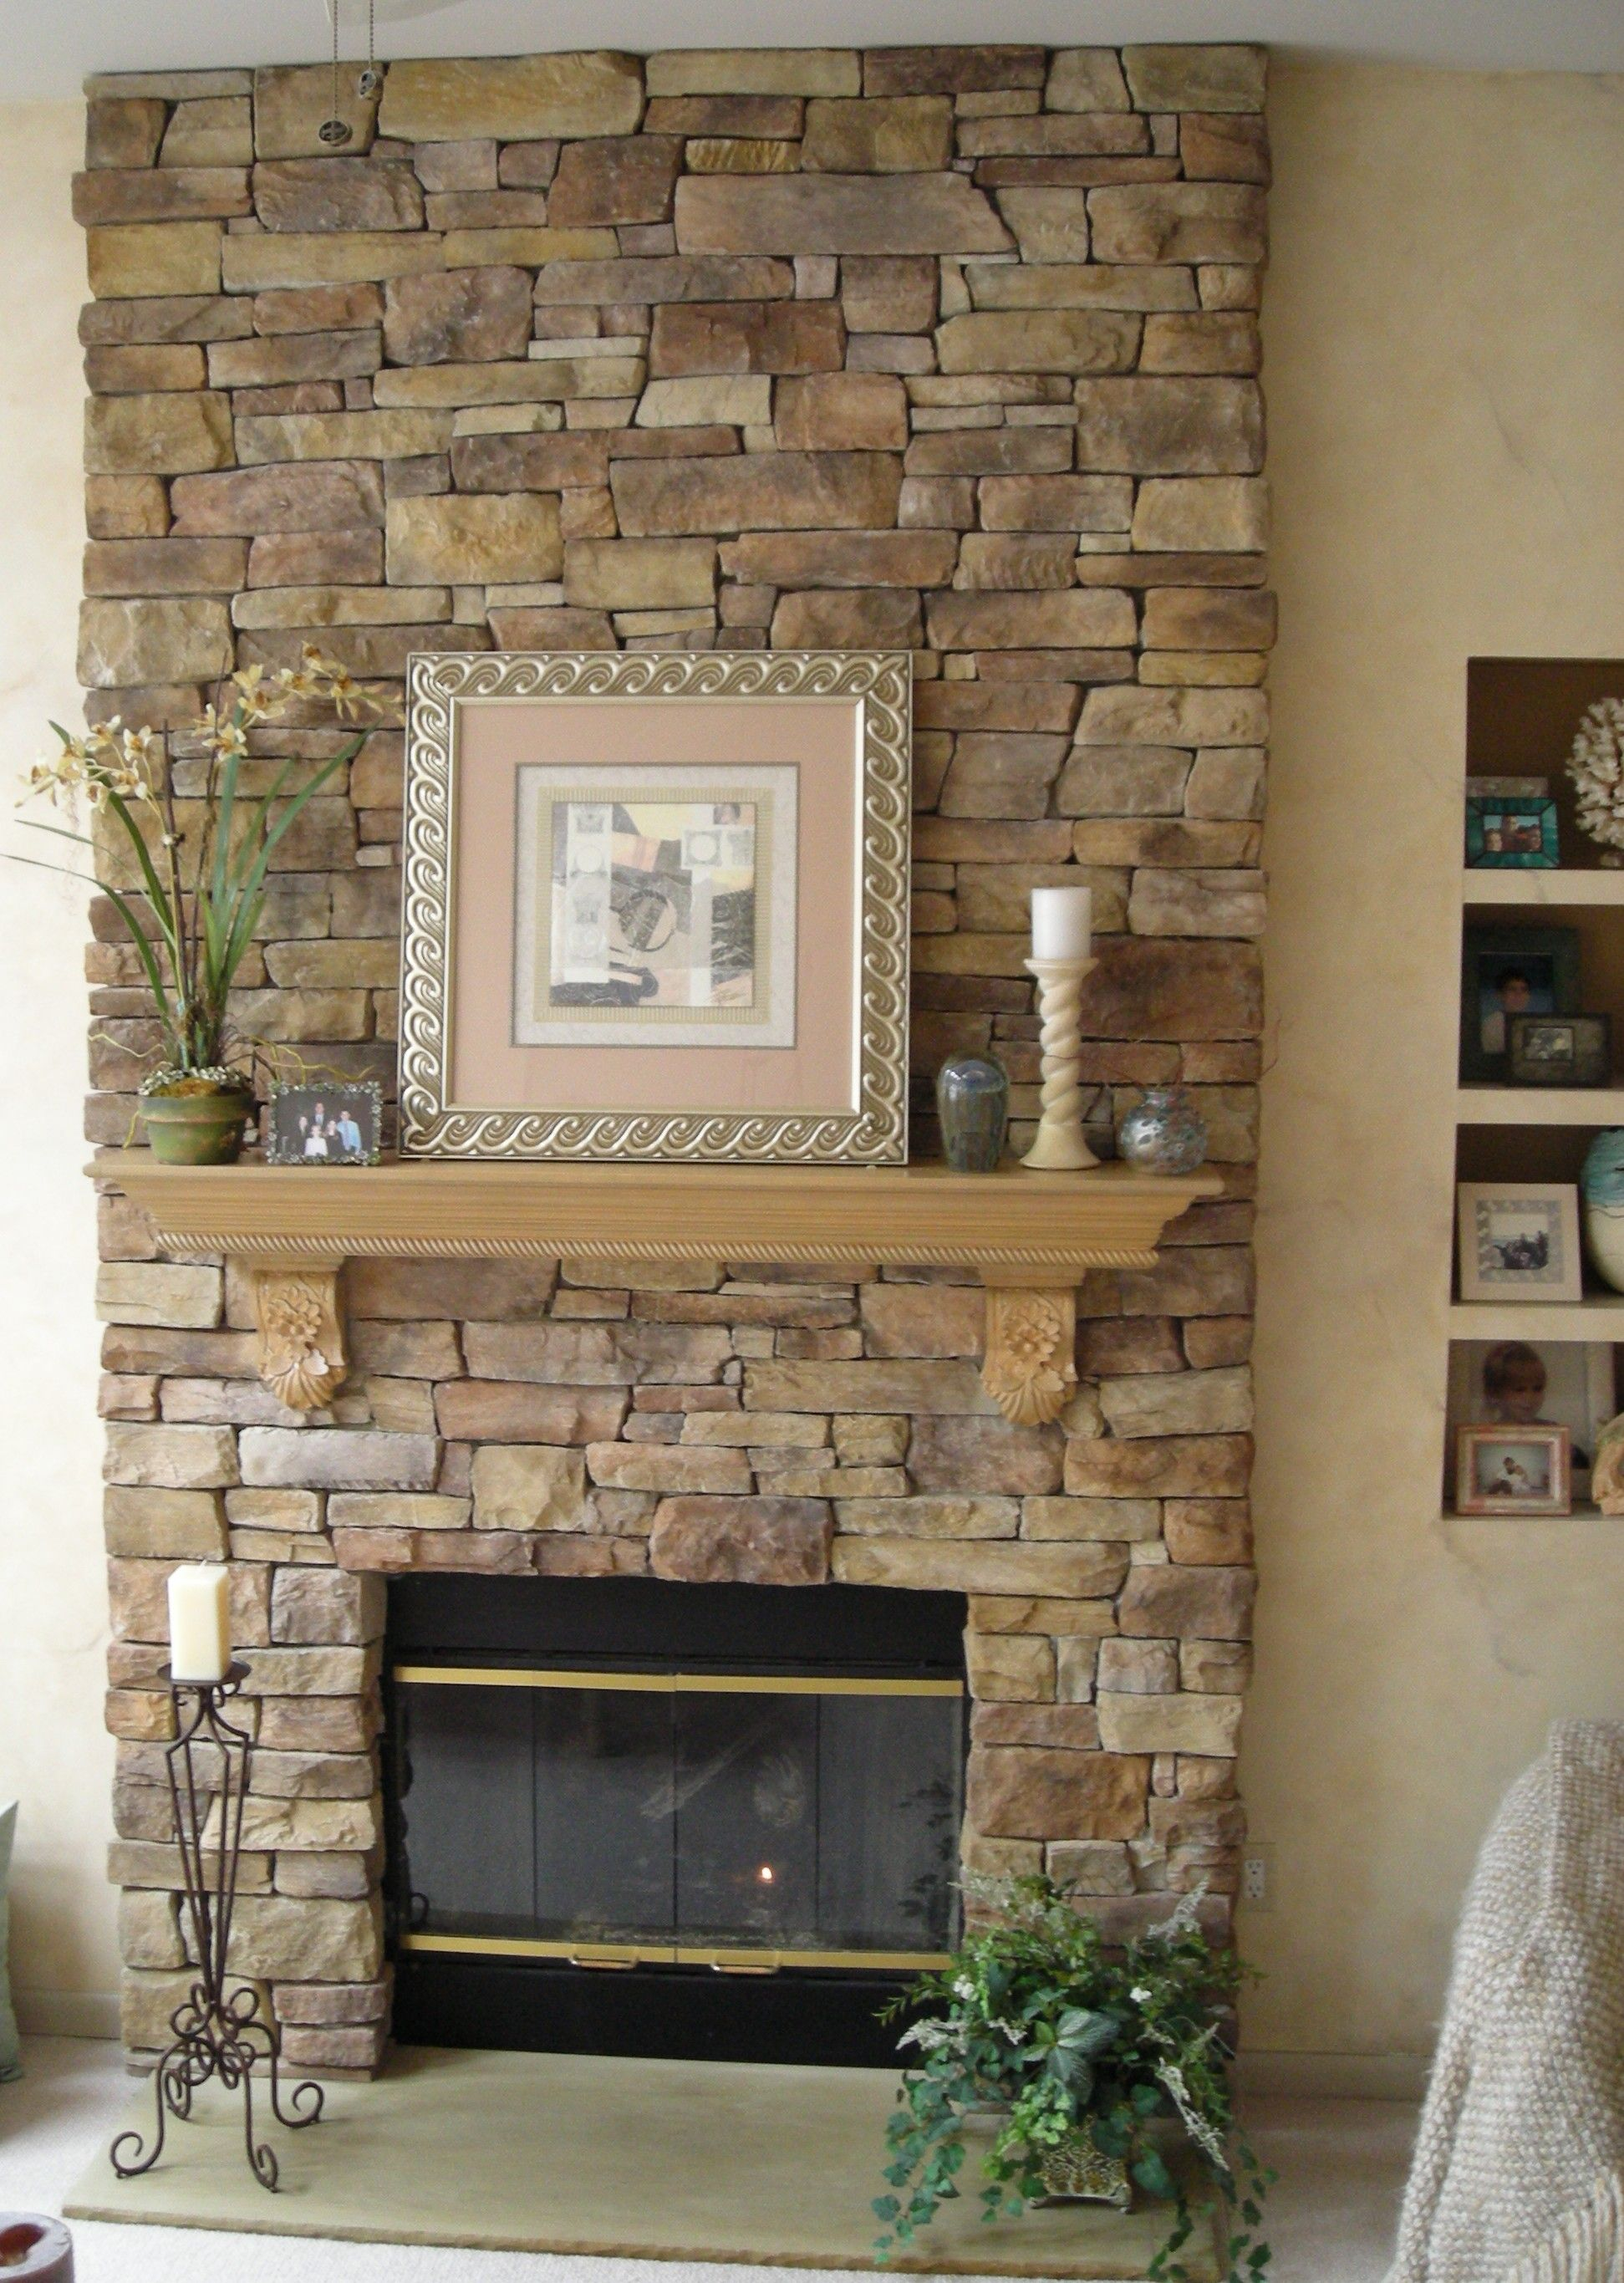 Interior Stone Fireplace Specializes In Faux Stone Veneer And